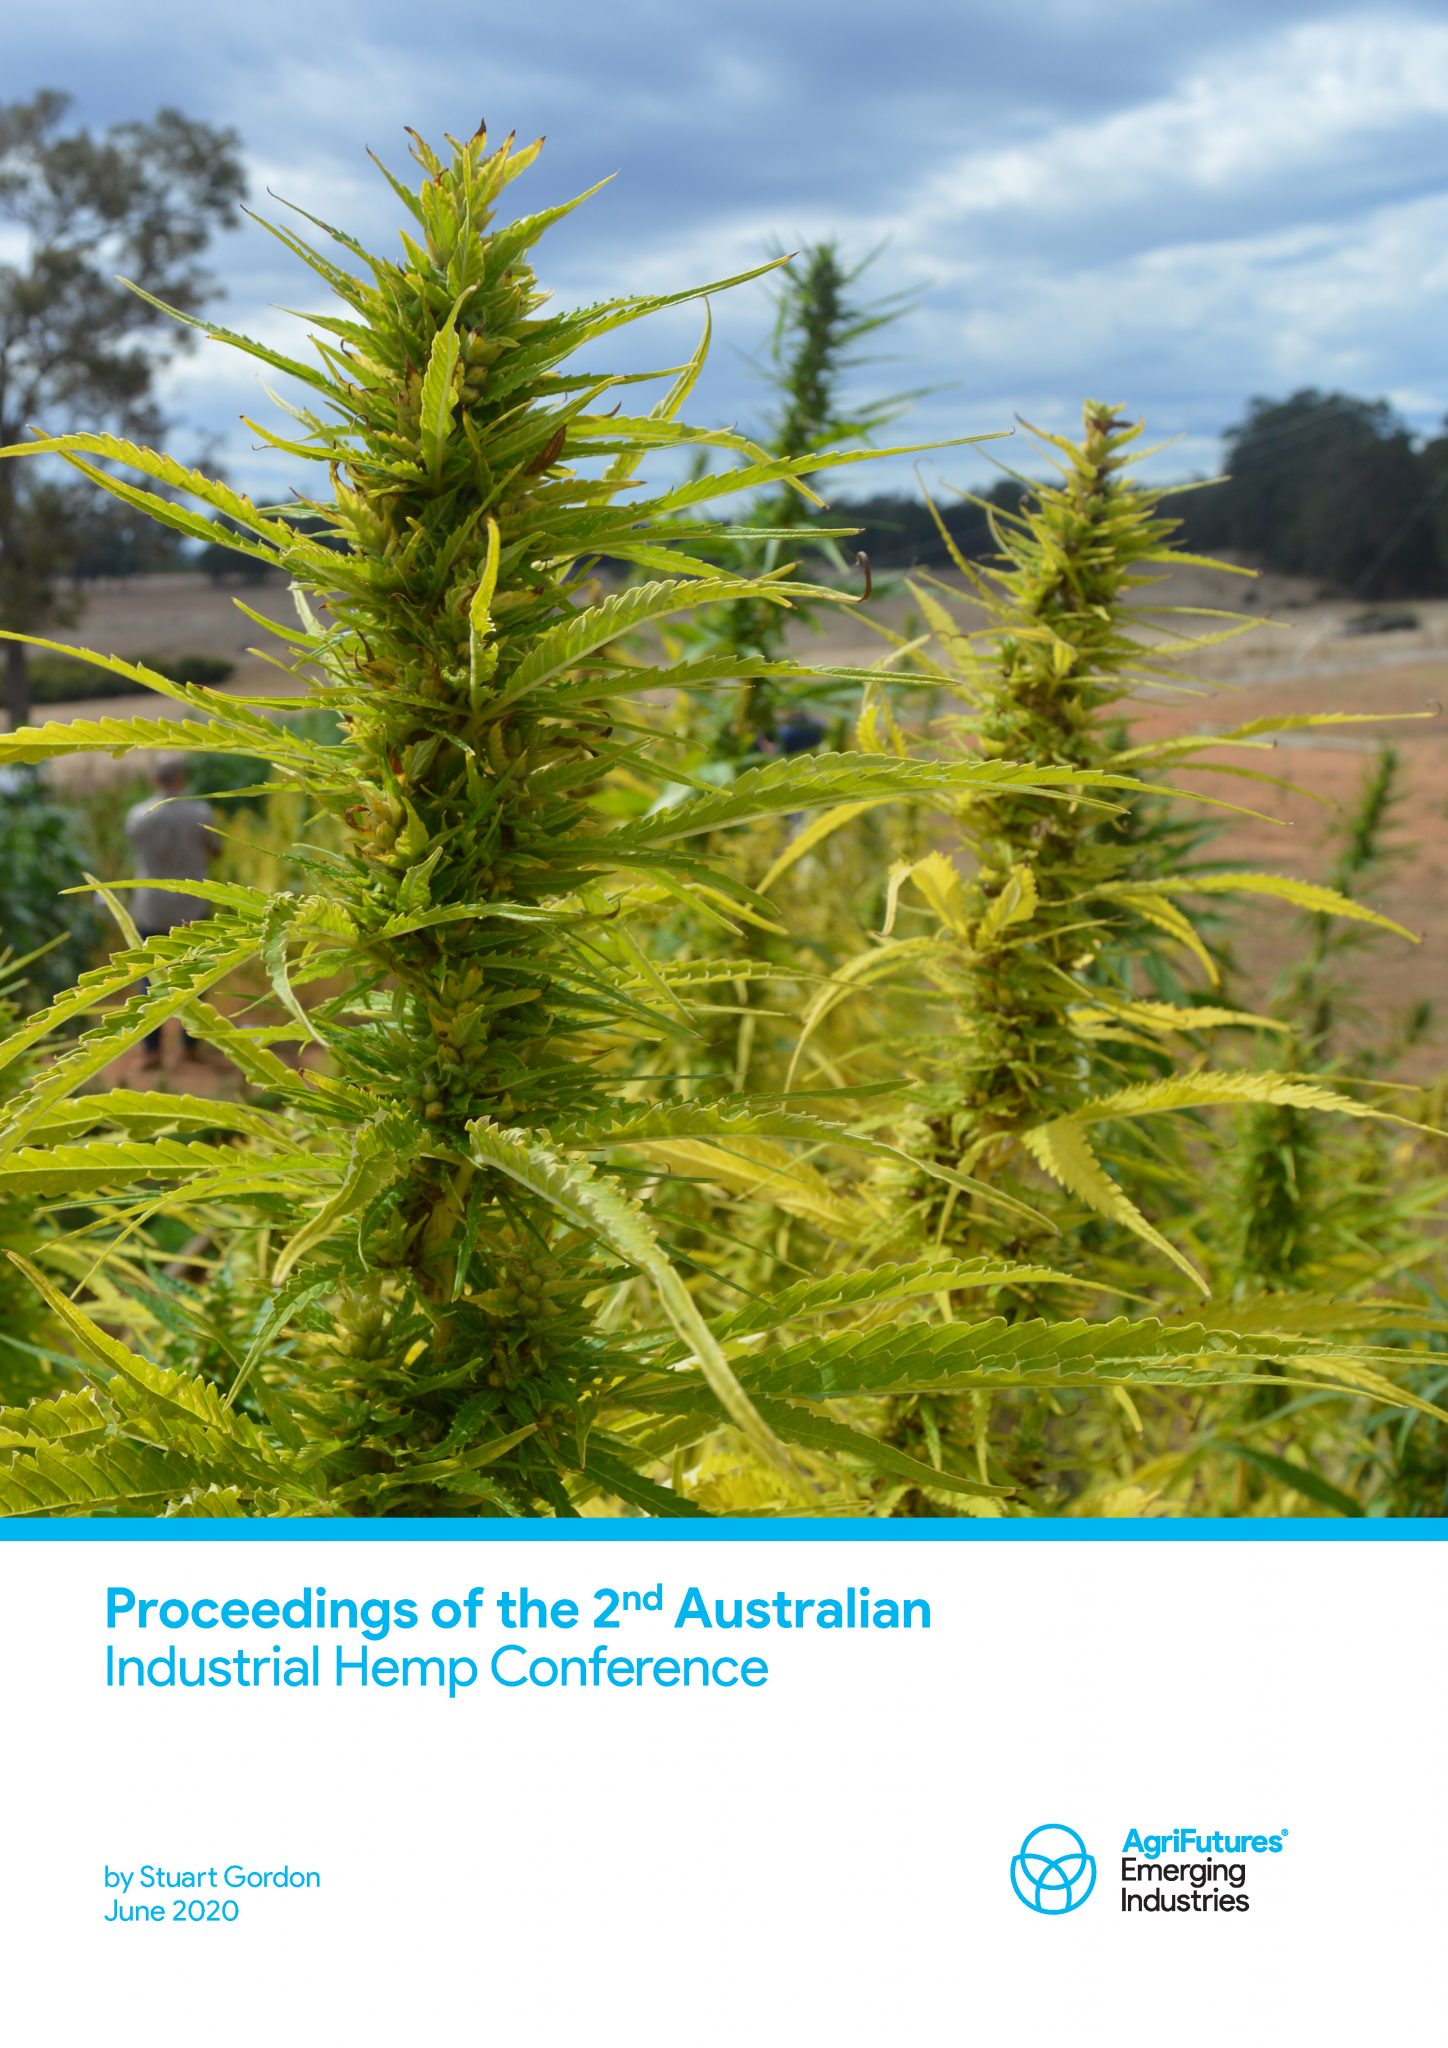 Proceedings of the 2nd Australian Industrial Hemp Conference 2020 - image